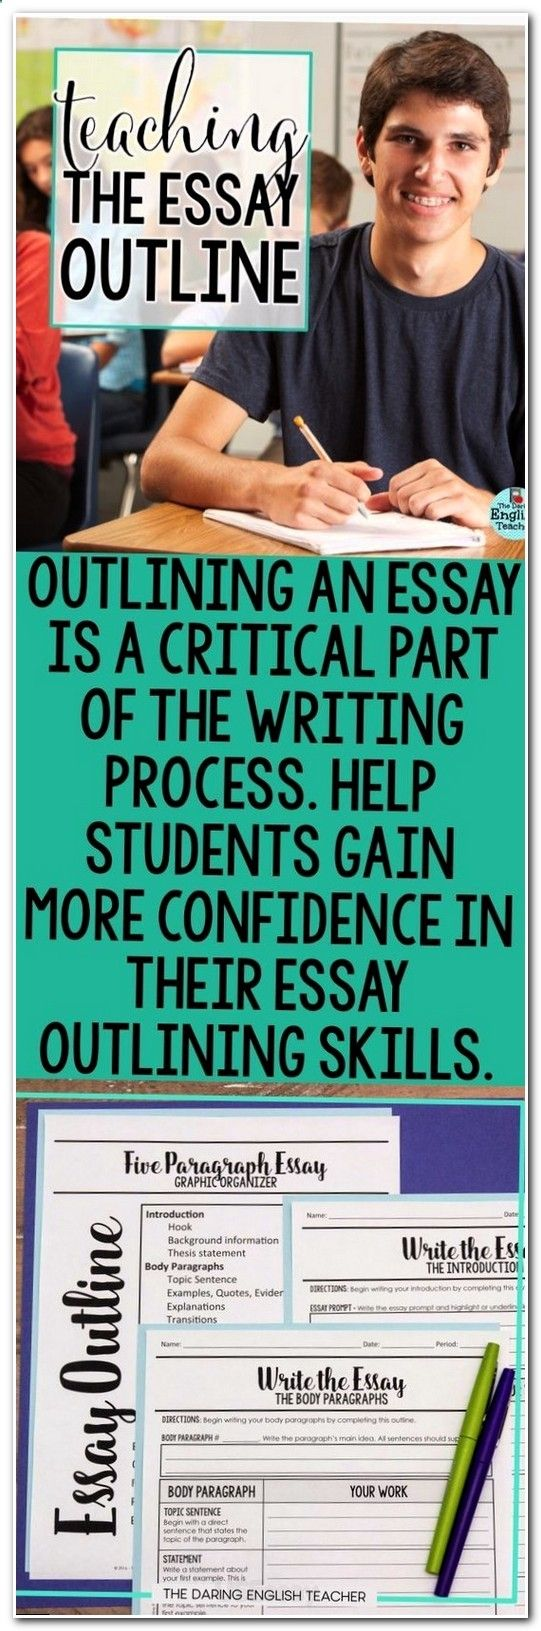 essay essaywriting argumentative essay topics examples how to   essay essaywriting argumentative essay topics examples how to write a university history essay writing tasks for students essay about macbeth ambition